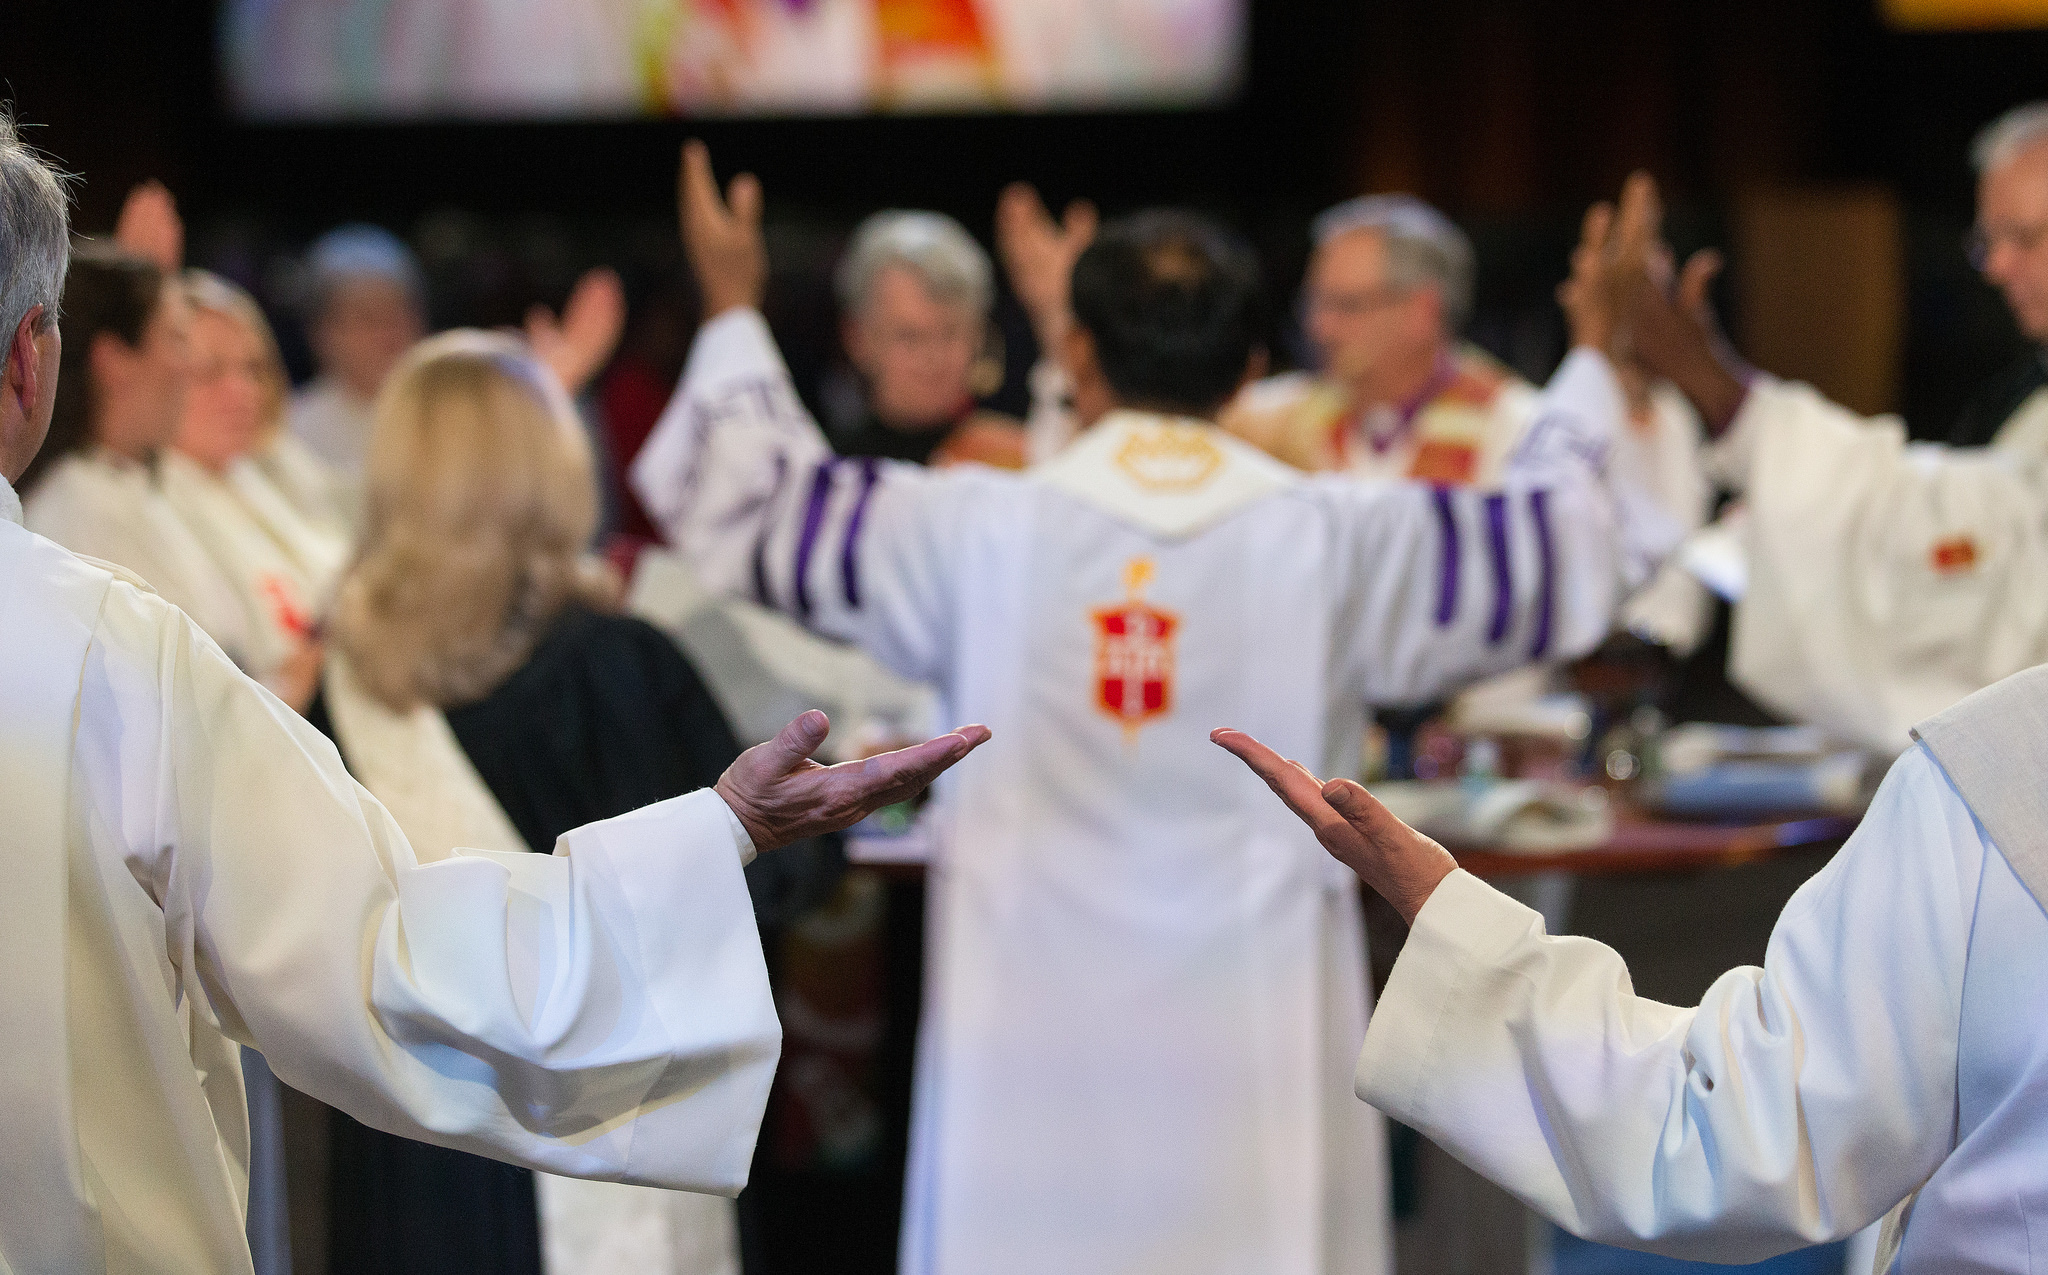 Clergy help to bless the elements for Holy Communion.  Photo credit: Mike DuBose, UMNS